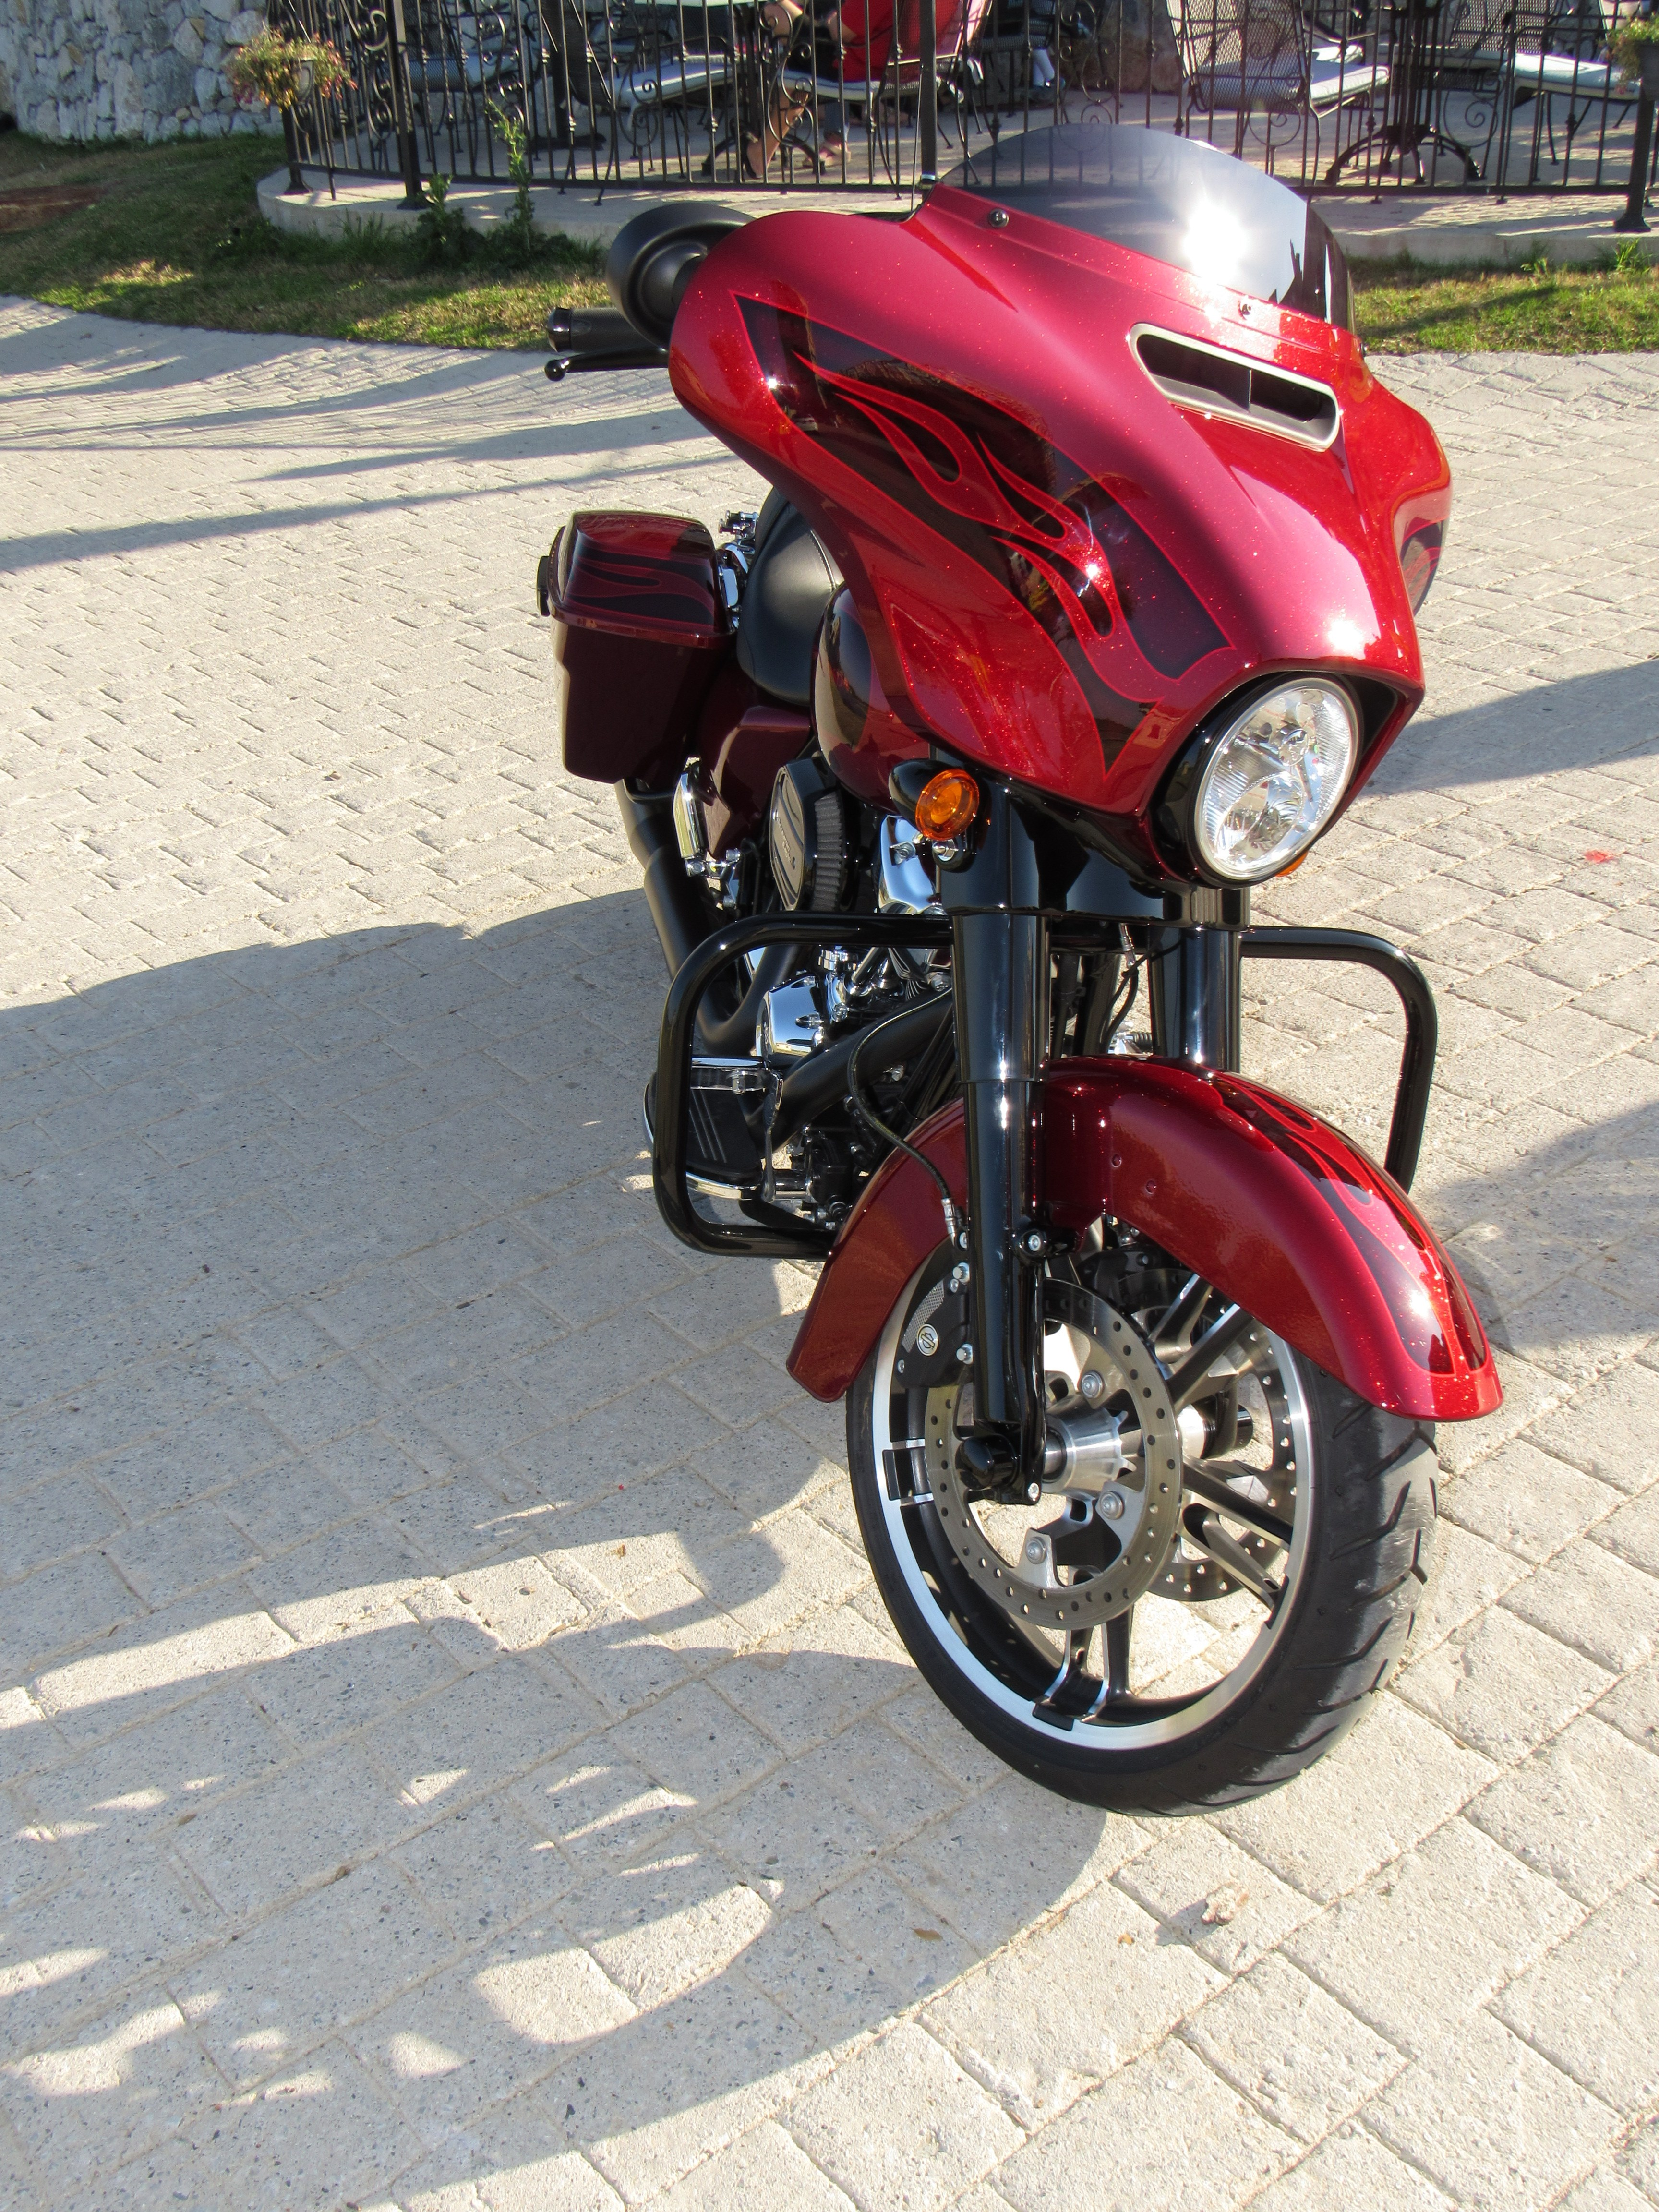 Hot Rod Harley >> 2017 Harley-Davidson® FLHXS Street Glide® Special (Hard Candy Hot Rod Red Flake Custom Paint ...